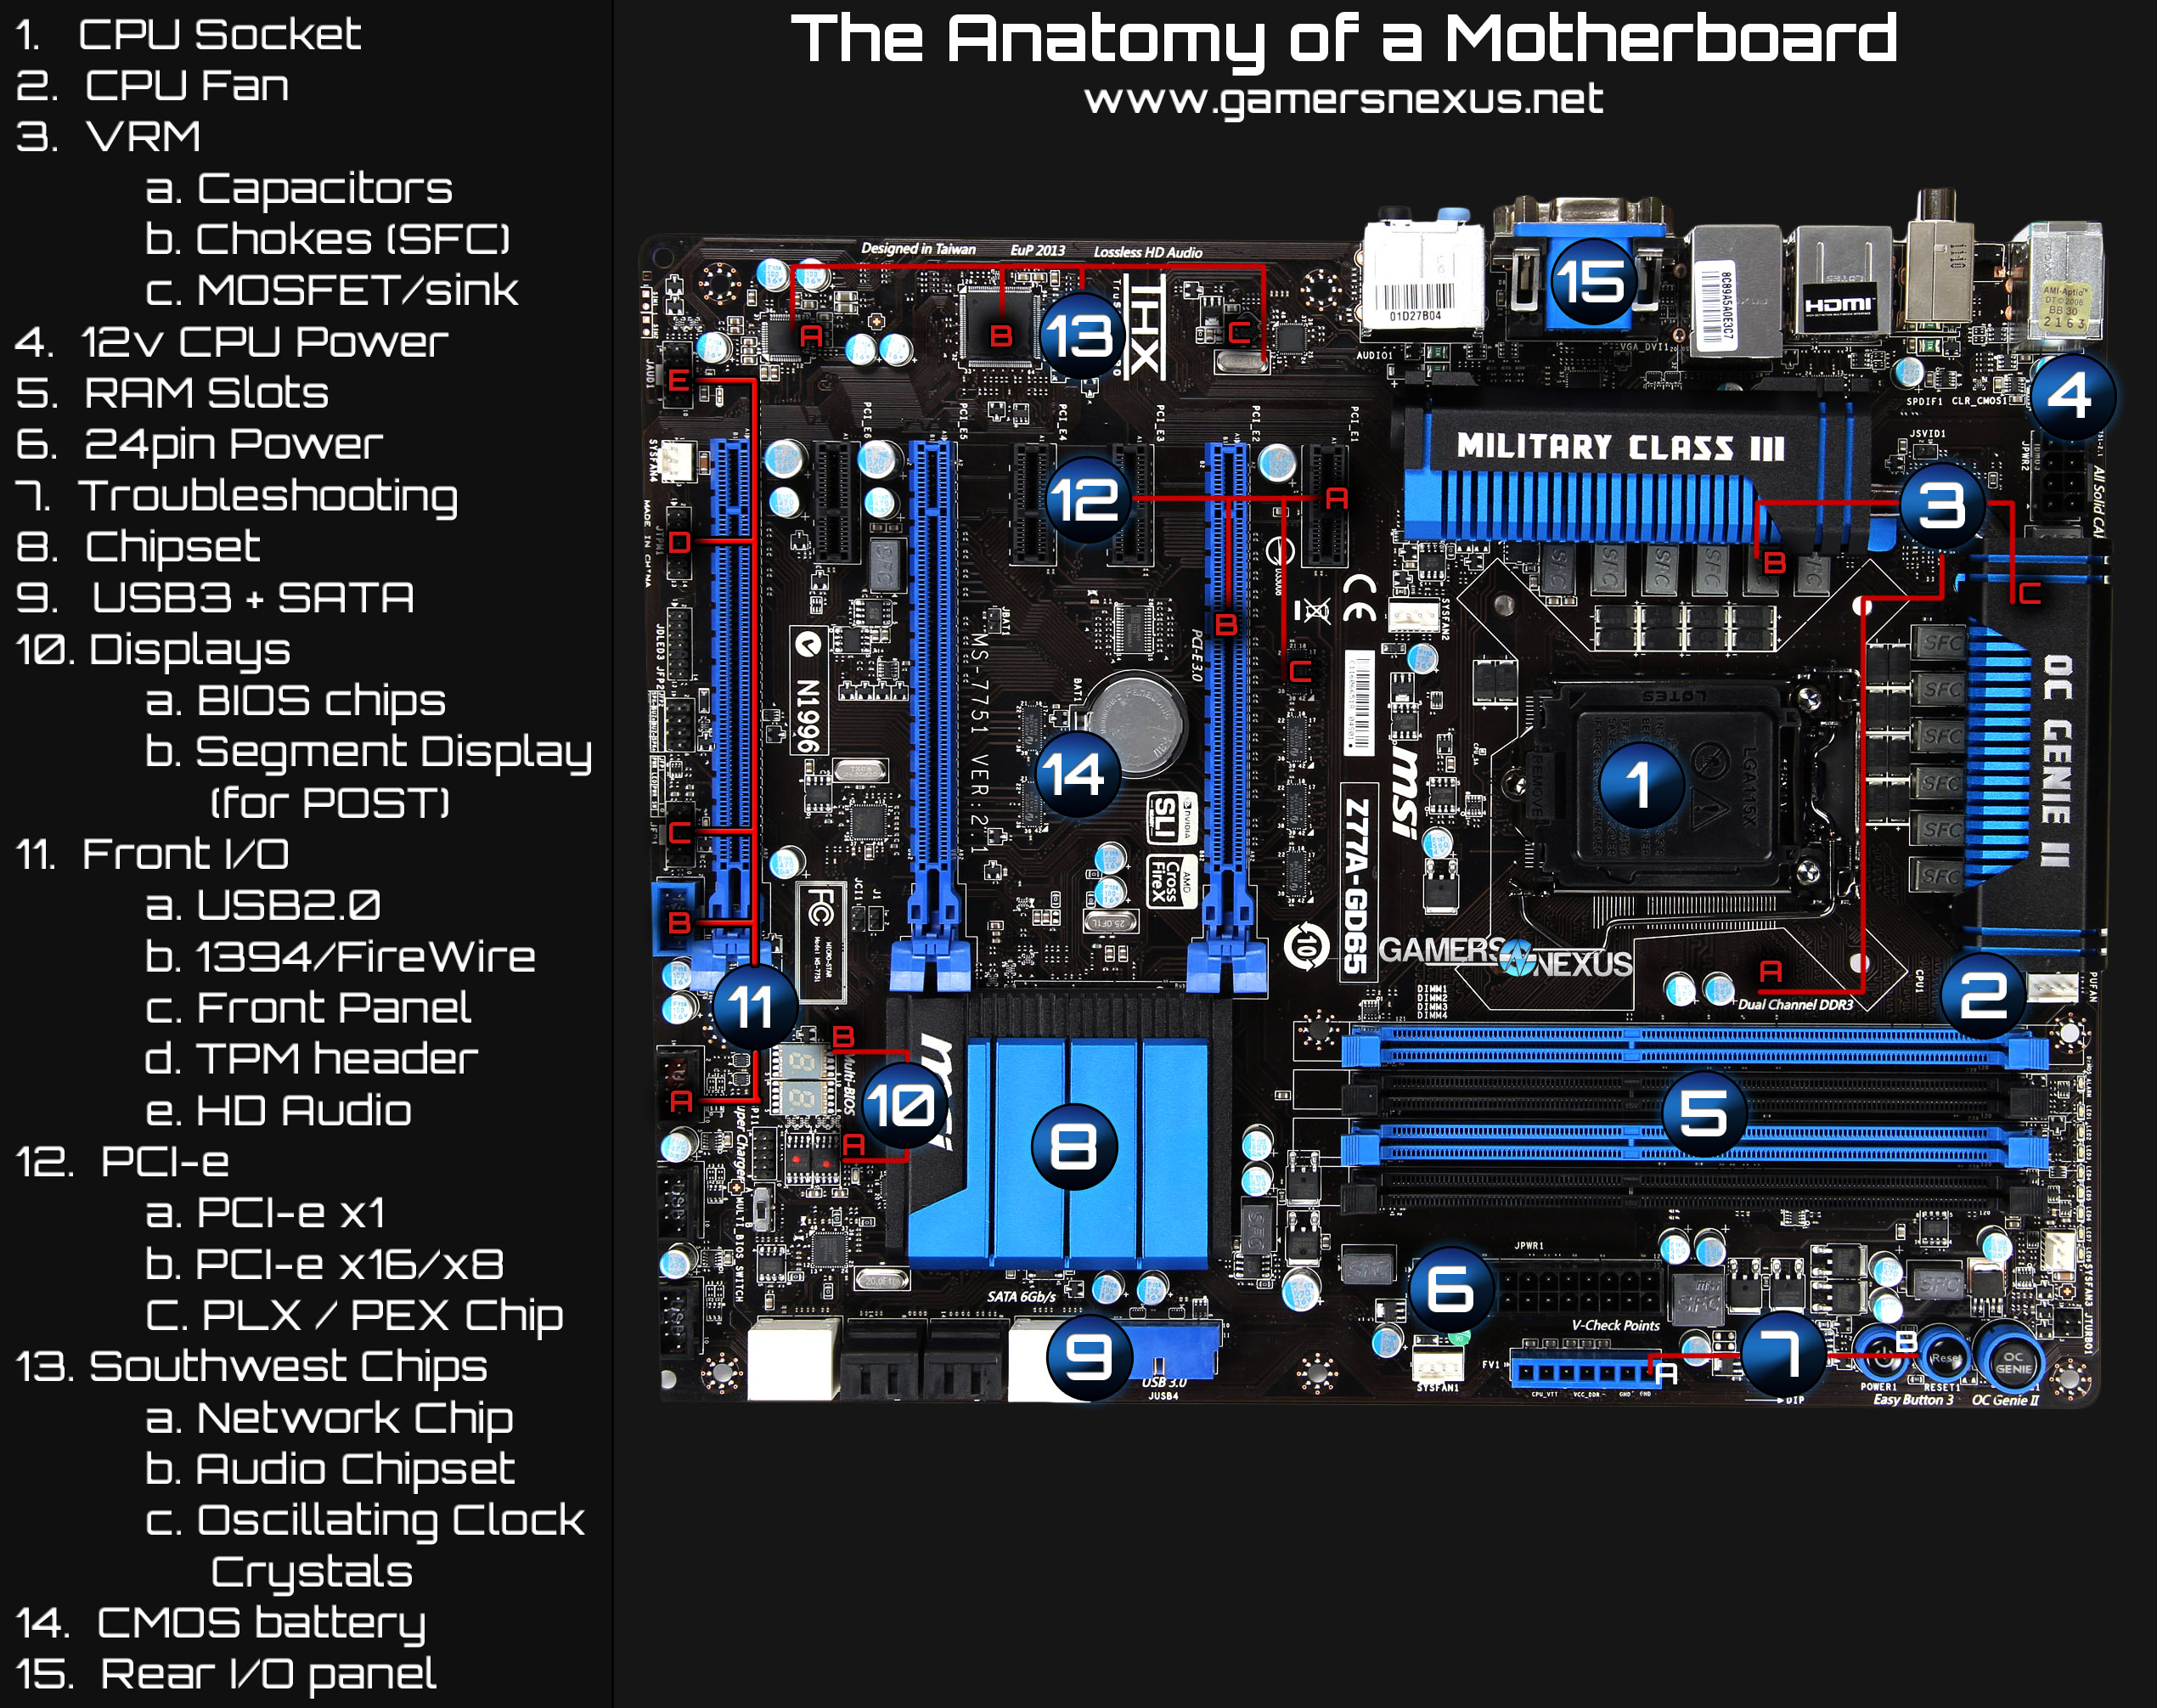 anatomy of a motherboard vrm chipset pci e explained rh gamersnexus net computer motherboard diagram drawing computer motherboard diagram free download